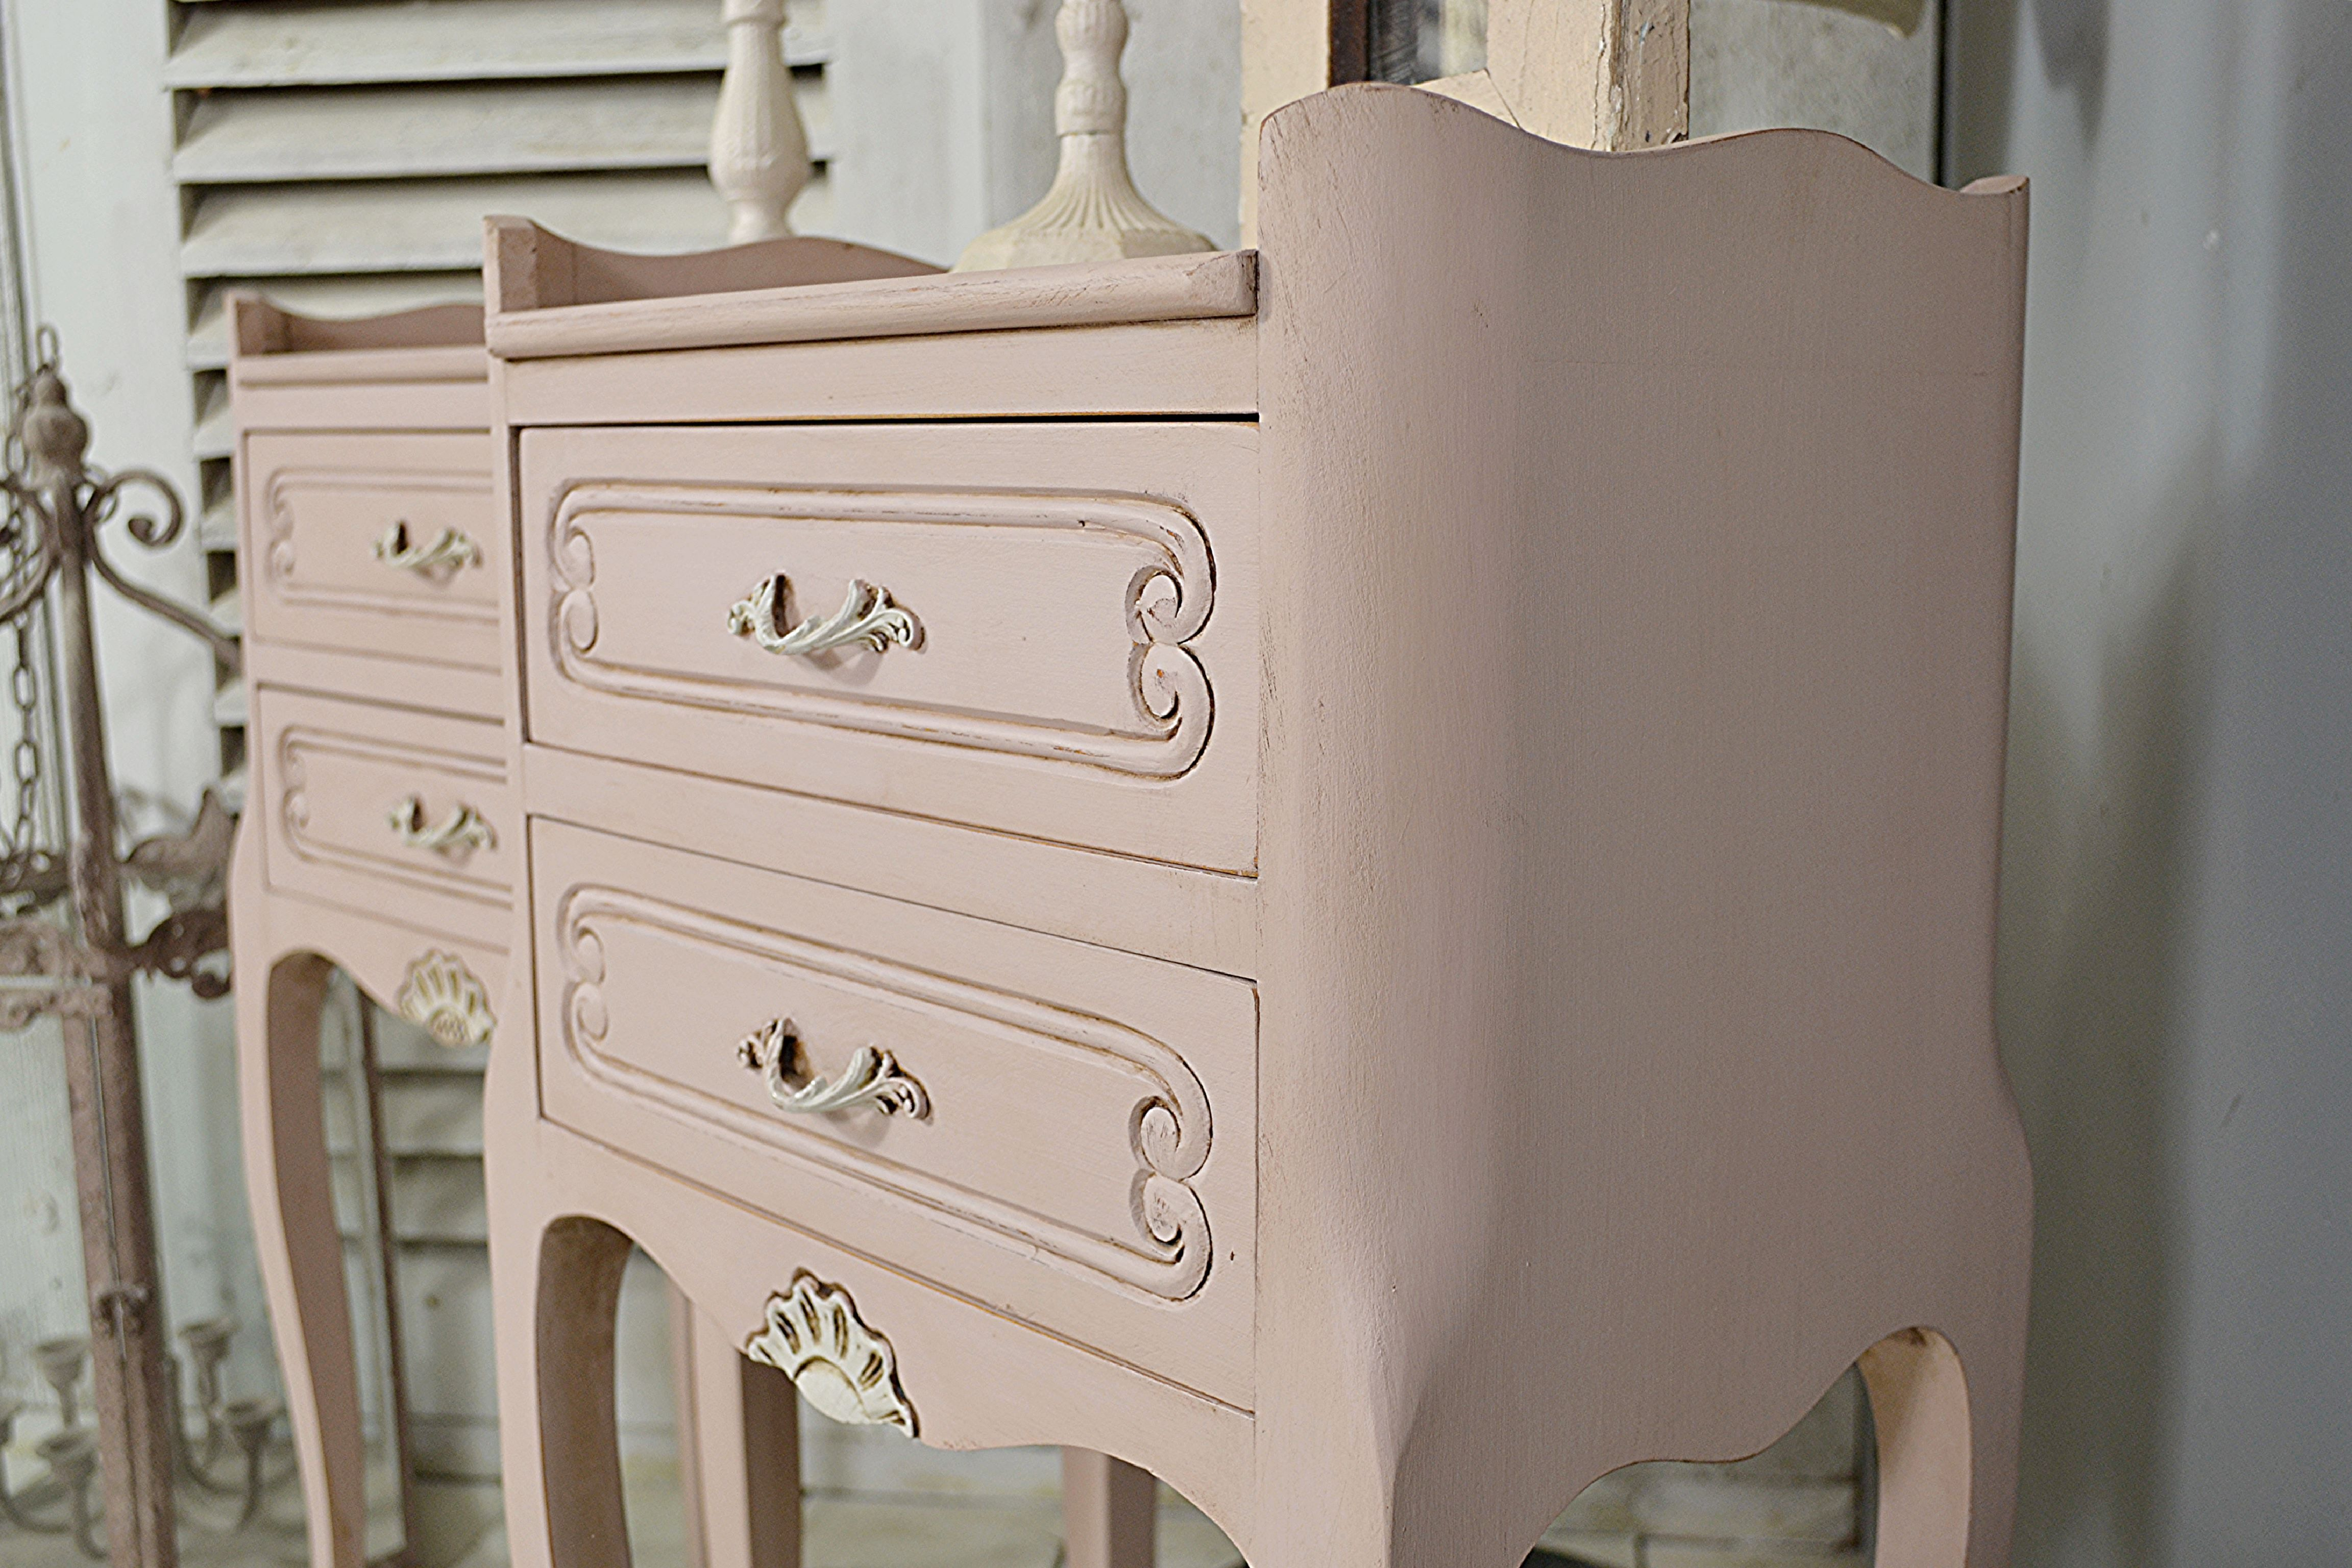 #letstrove This pair of 2 Drawer Vintage French Bedside Tables will bring charm and sophistication to any bedroom! We love their cabriole feet and pretty handles with his and hers shell detail. We've painted in Mylands Soho House, with Zoffany Quarter Empire Grey detail, a light distress and dark wax to age.  #pink #mylandspaint #frenchvintage #bedsidetables #frenchfurniture #shabbychic #vintage #zoffany